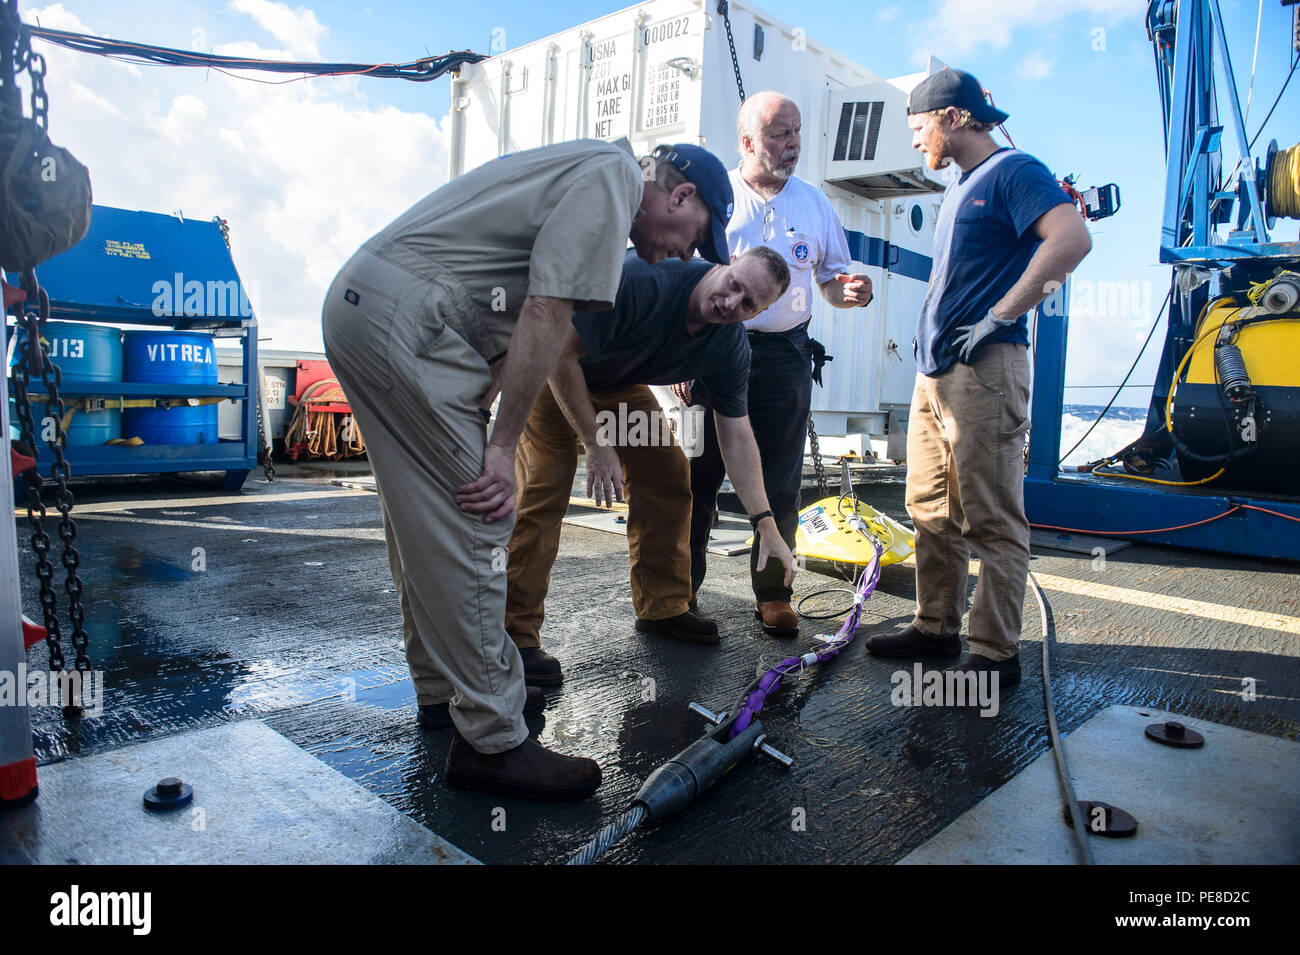 151023-N-RZ218-069   BAHAMAS (Oct. 23, 2015) Contractors with Phoenix International Incorporated prepares a tow pinger locater 25 (TPL 25) for the upcoming salvage mission aboard USNS Apache (T-ATF 172). USNS Apache departed Norfolk, Va., Oct. 19, to begin searching for wreckage from the missing U.S. Flagged merchant vessel El Faro. The ship is equipped with several pieces of underwater search equipment, including a voyage data recorder locator, side-scan sonar and an underwater remote operated vehicle. The Navy's mission will be to first locate the ship and, if possible, to retrieve the voyag - Stock Image